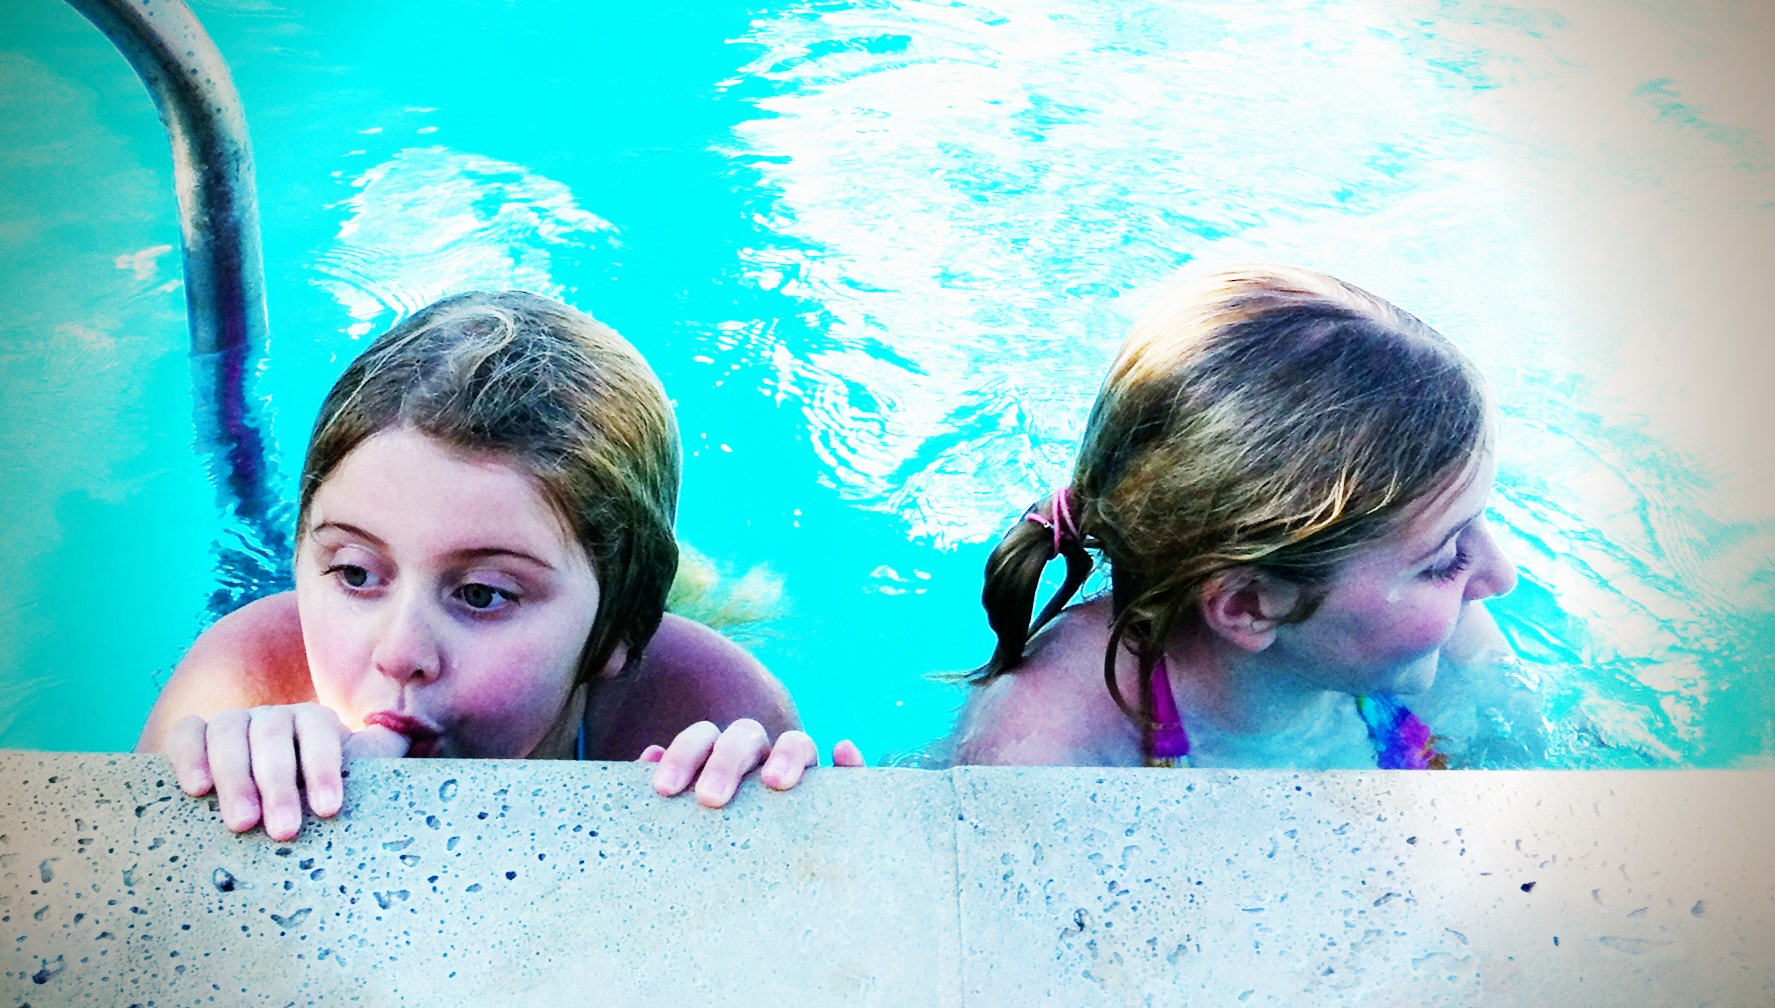 Photograph Lila & Bunny in the pool by Jay Holler on 500px